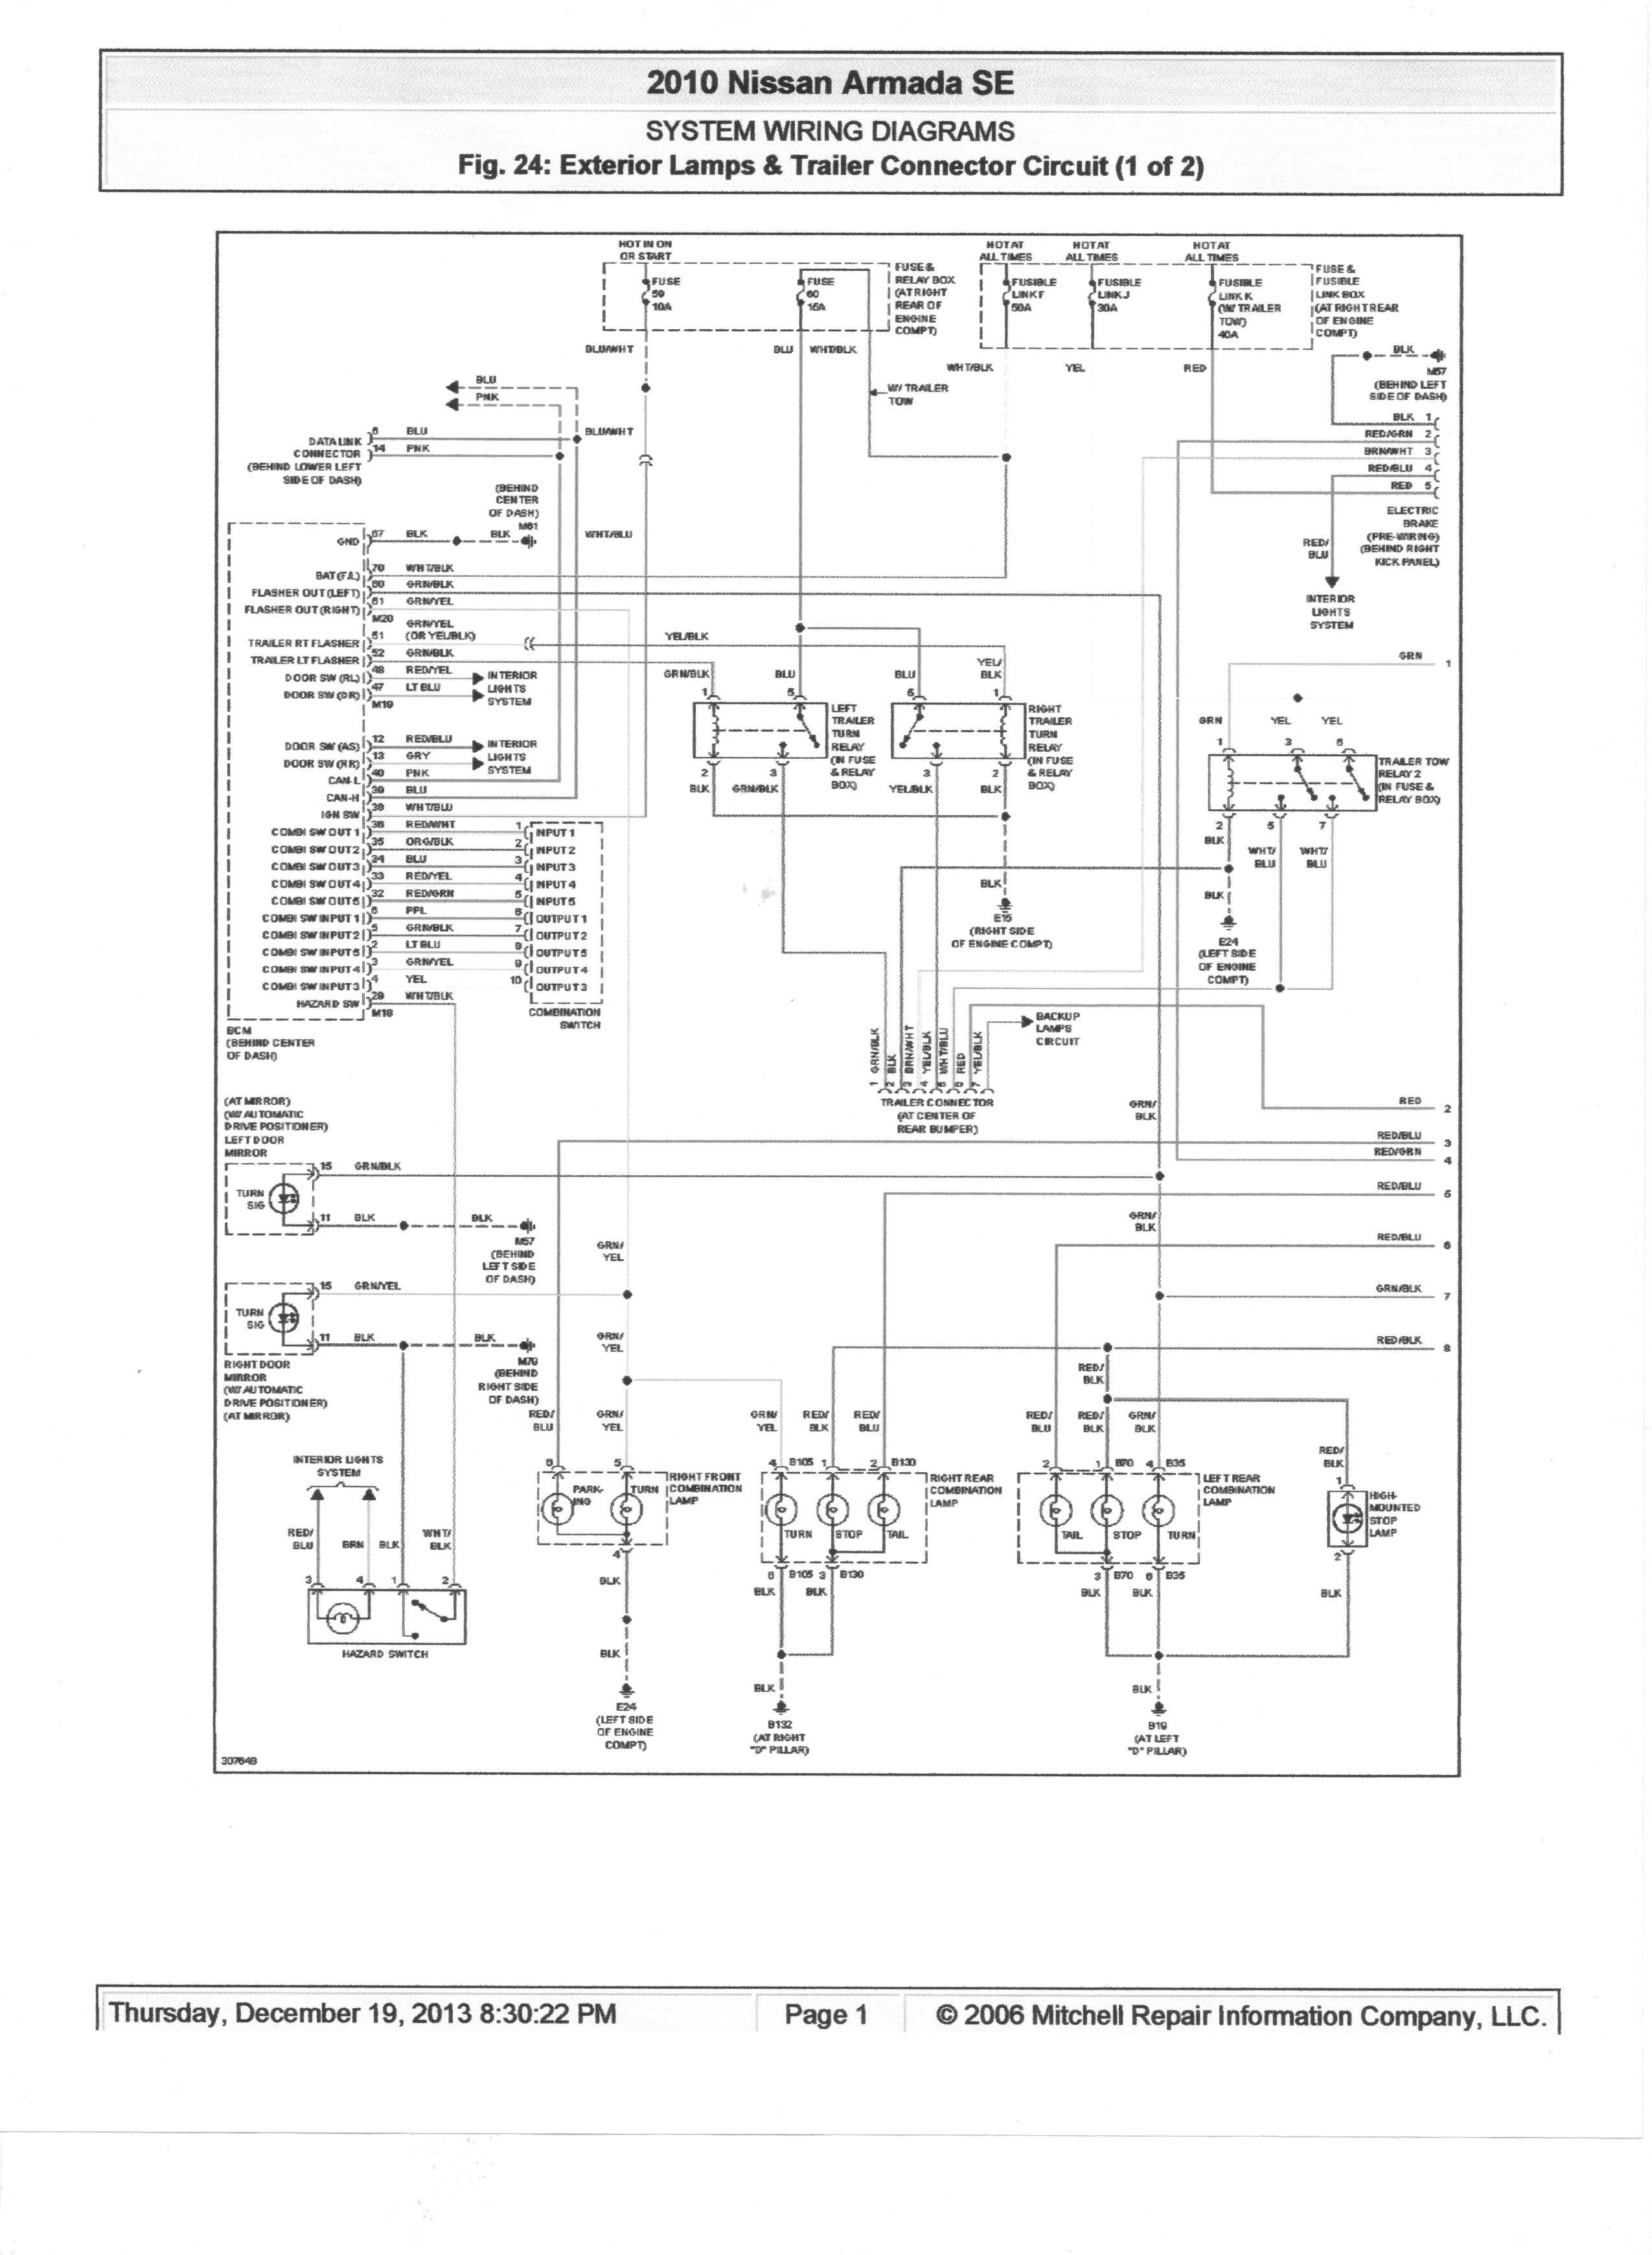 nissan titan trailer wiring harness diagram Download-Nissan Trailer Wiring Diagram Best Trailer Wiring Diagram Nissan Titan Valid Trailer Wiring Diagram 12-i